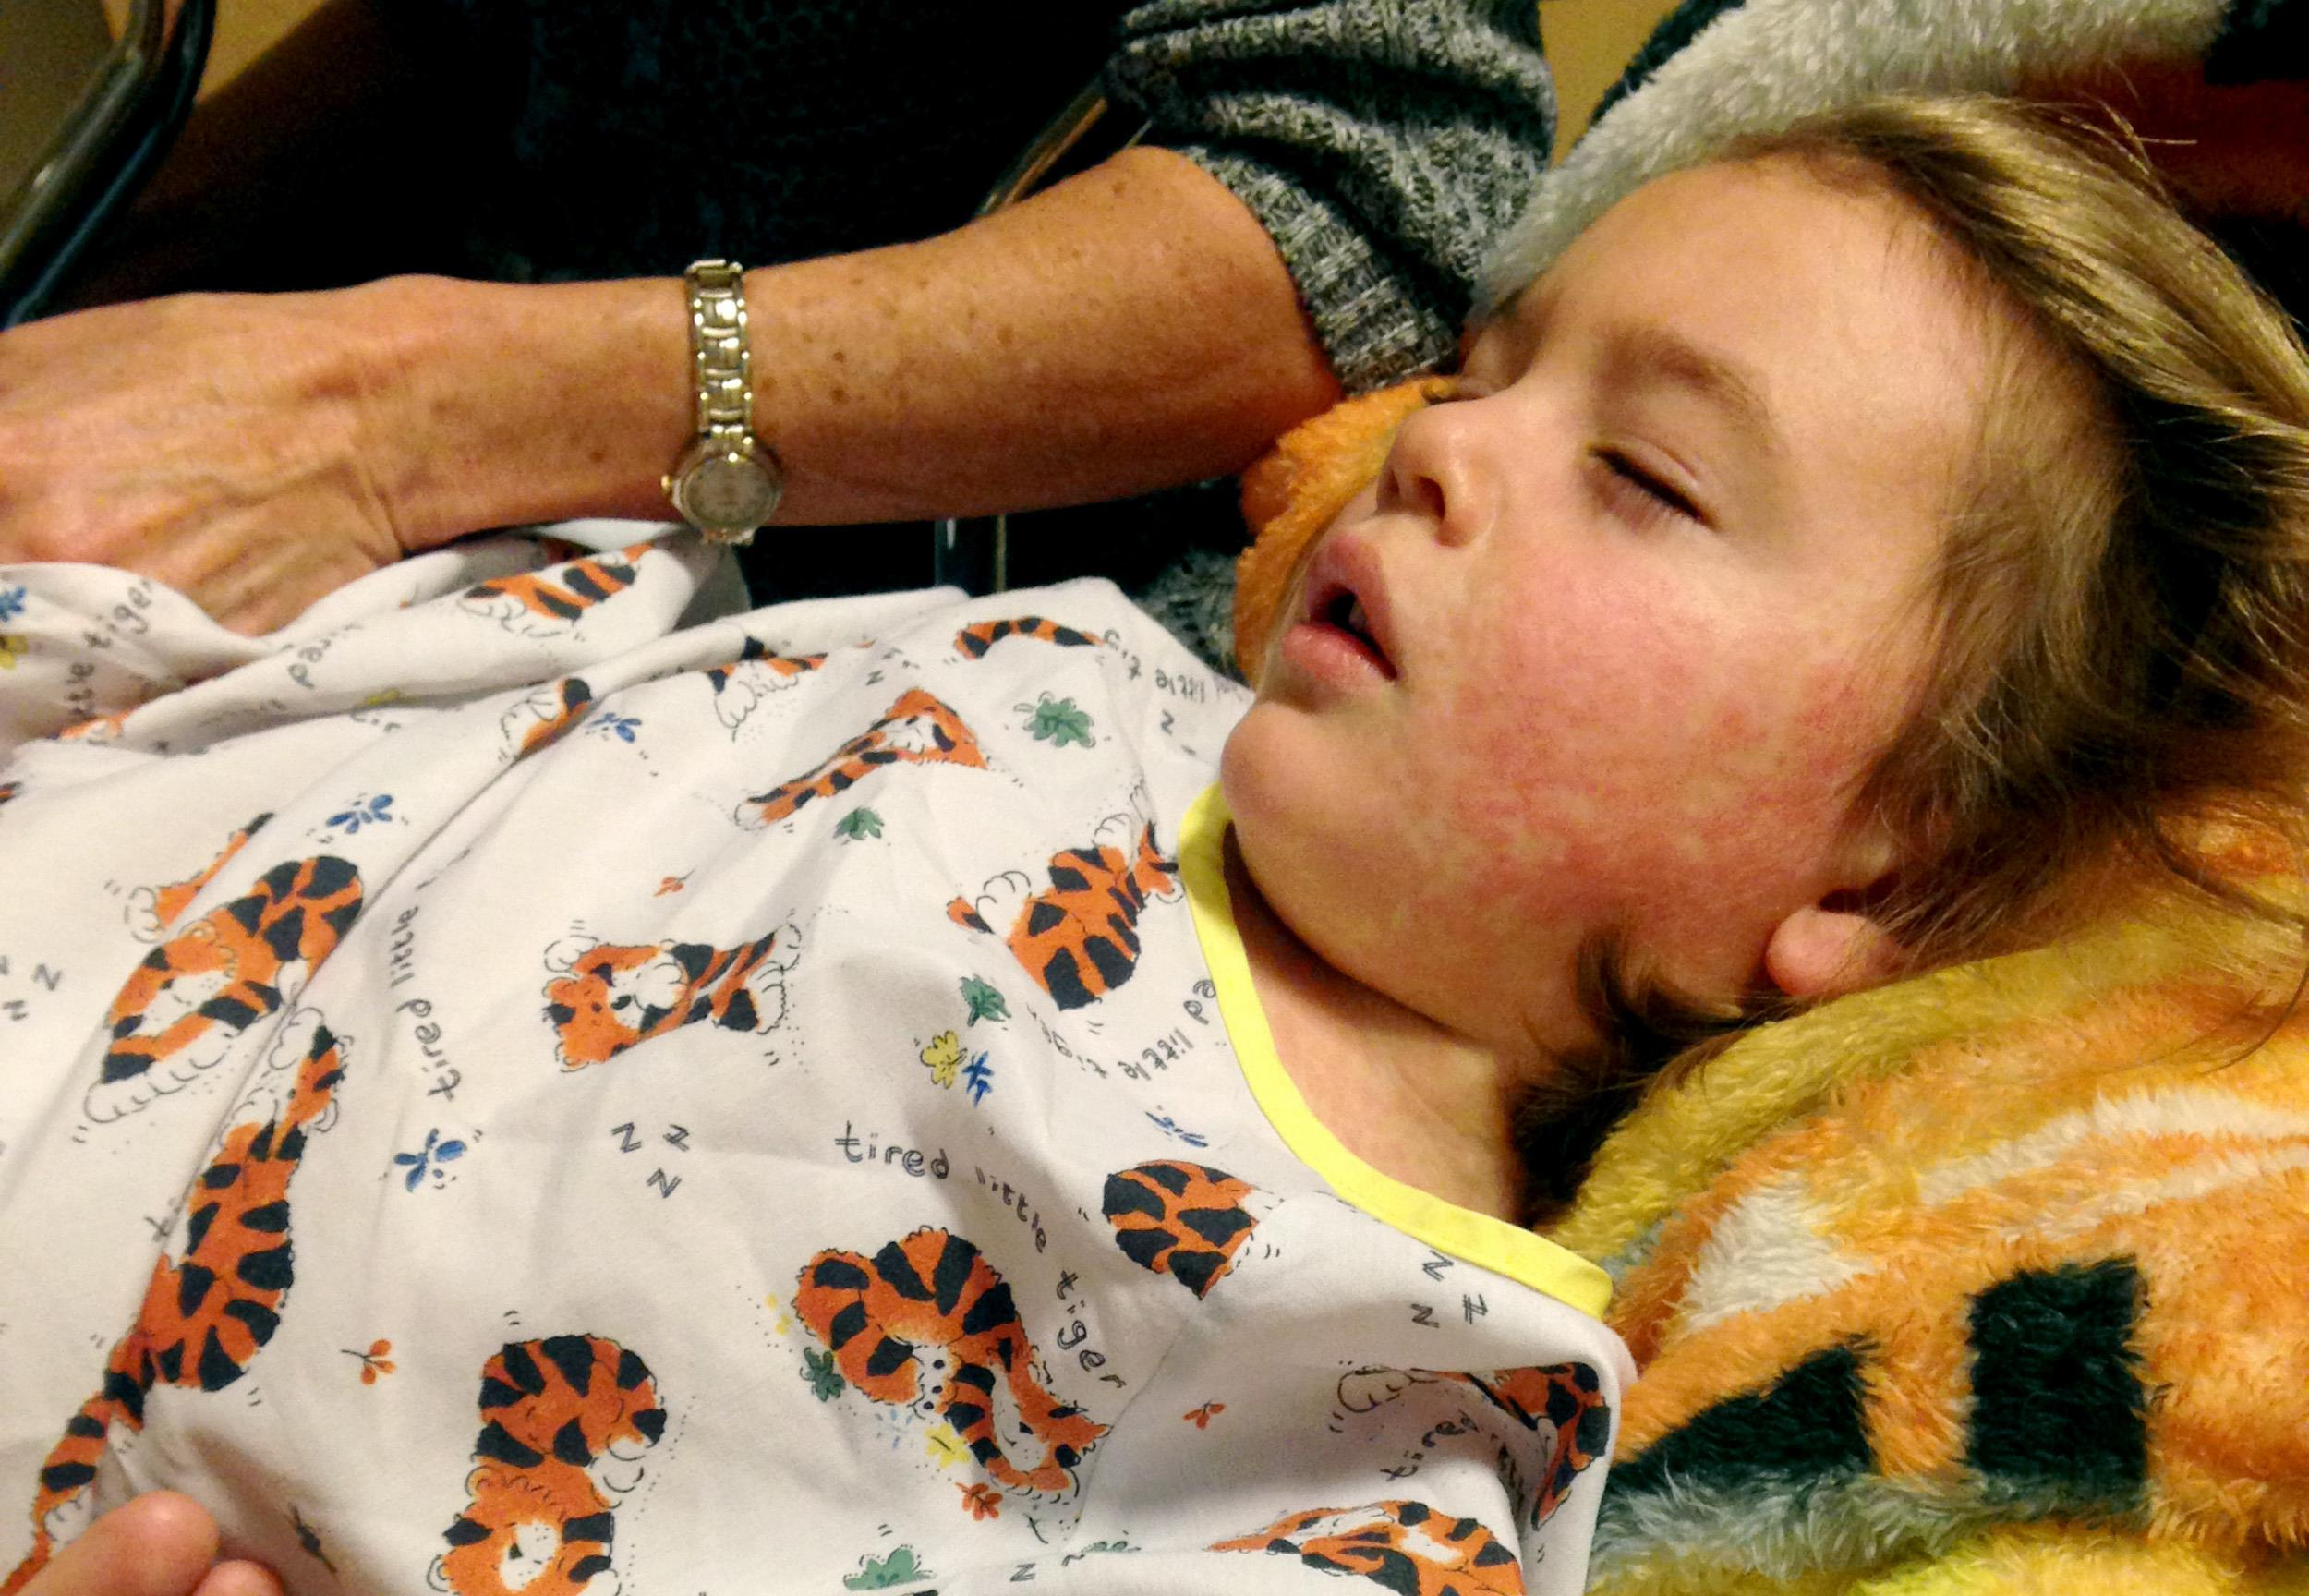 Child's Bout With Measles Makes Parents Glad for Vaccine